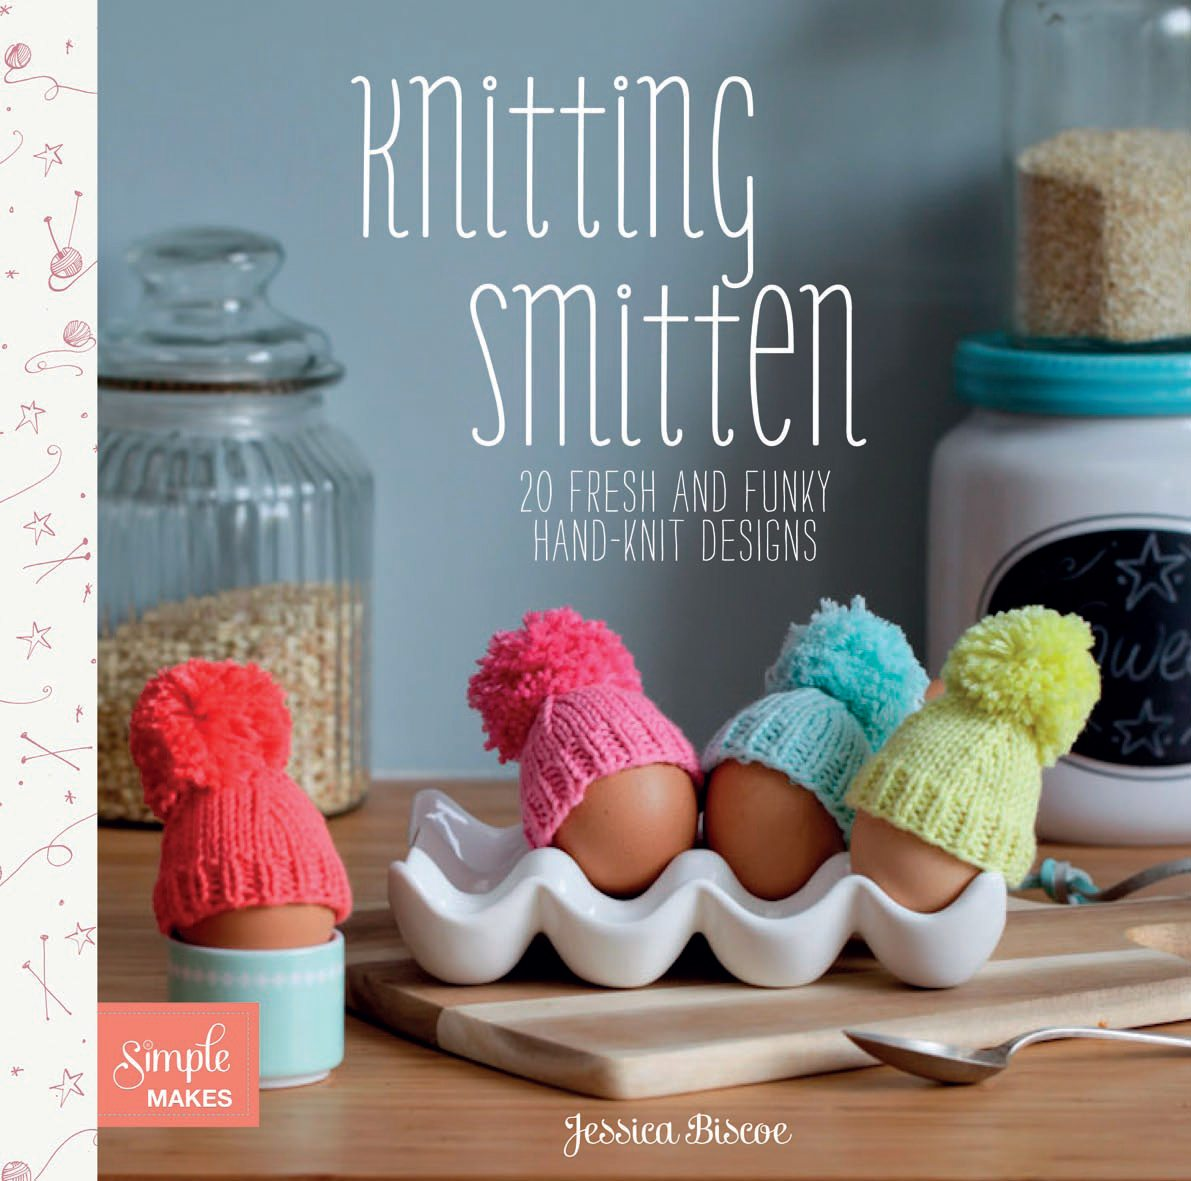 Jessica Biscoe, Knitting Smitten, Pattern, Book, Accessories, Jewellery Homewear